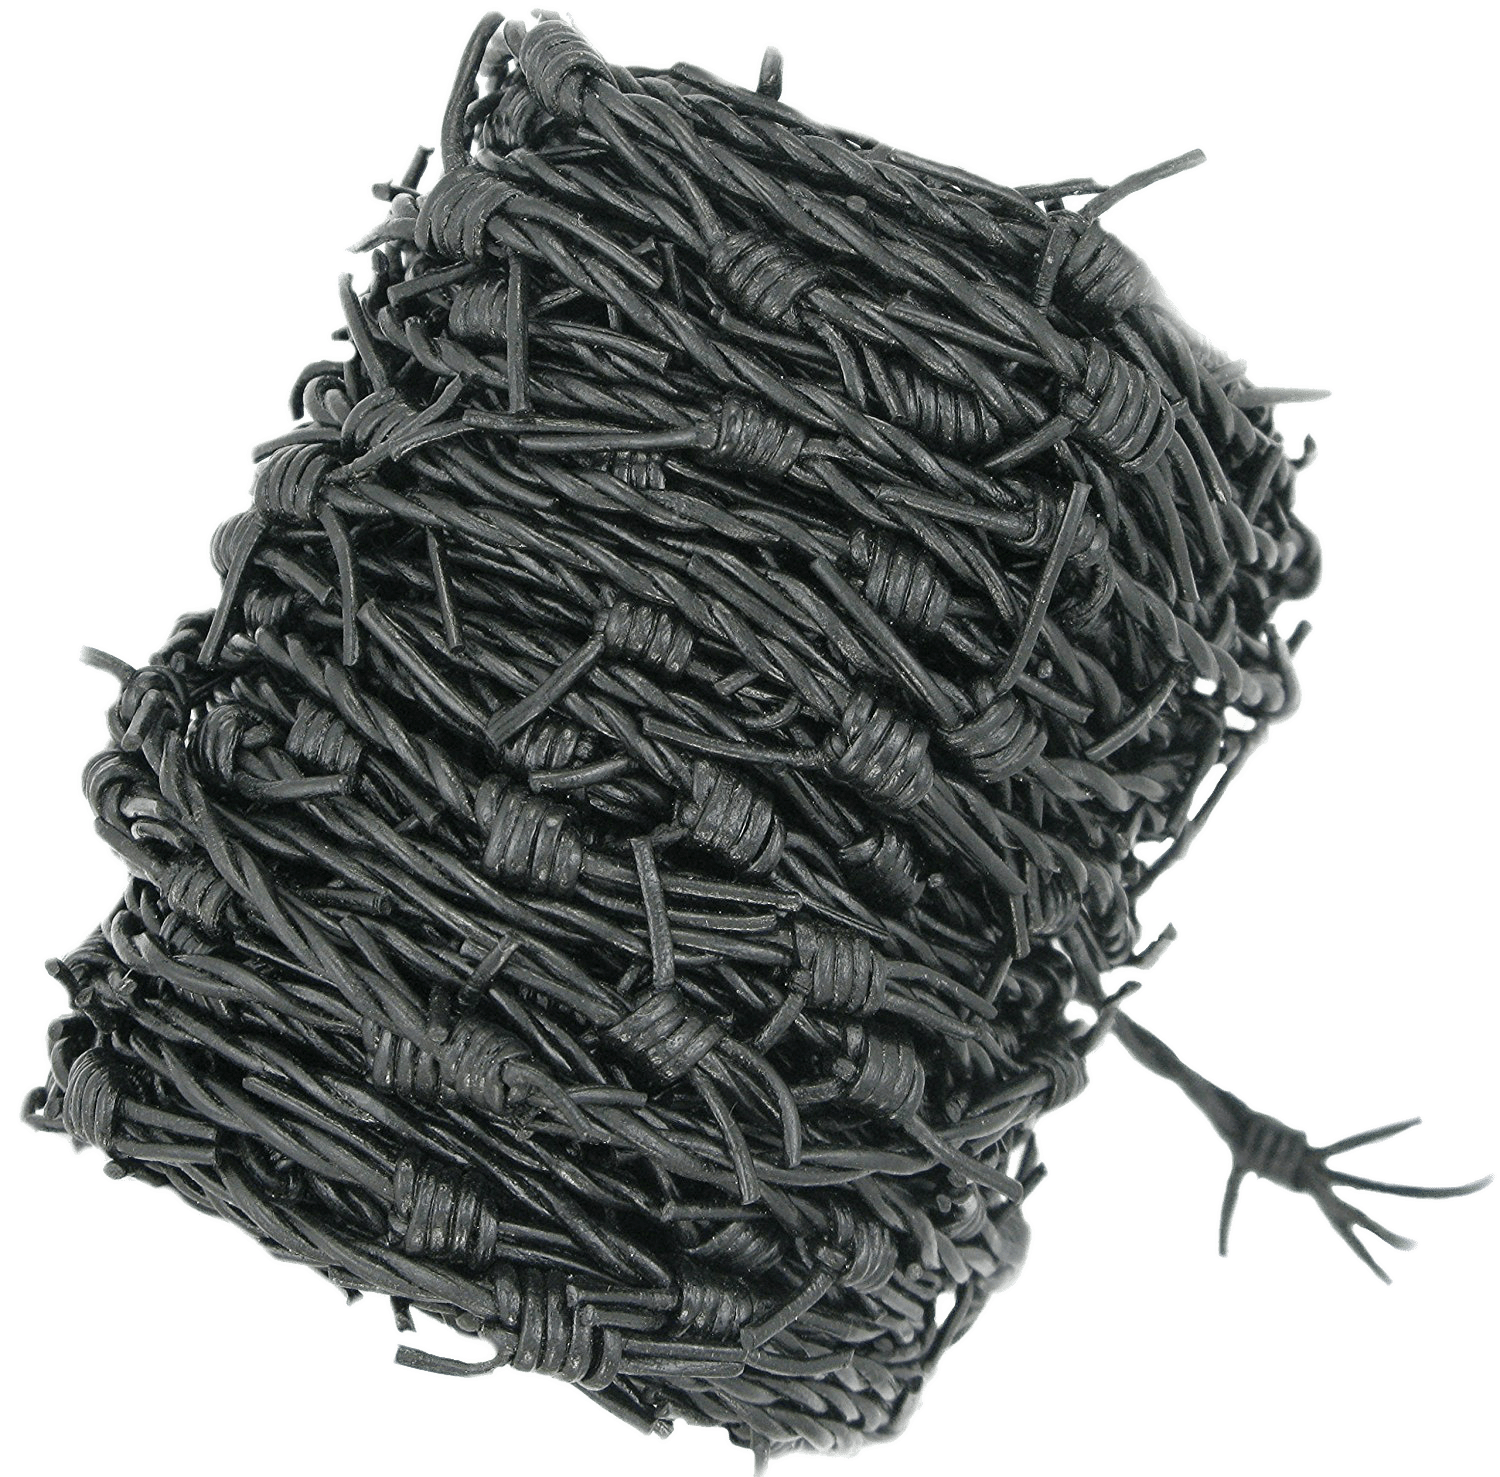 Fence clipart barbed wire fence. Leather version transparent png